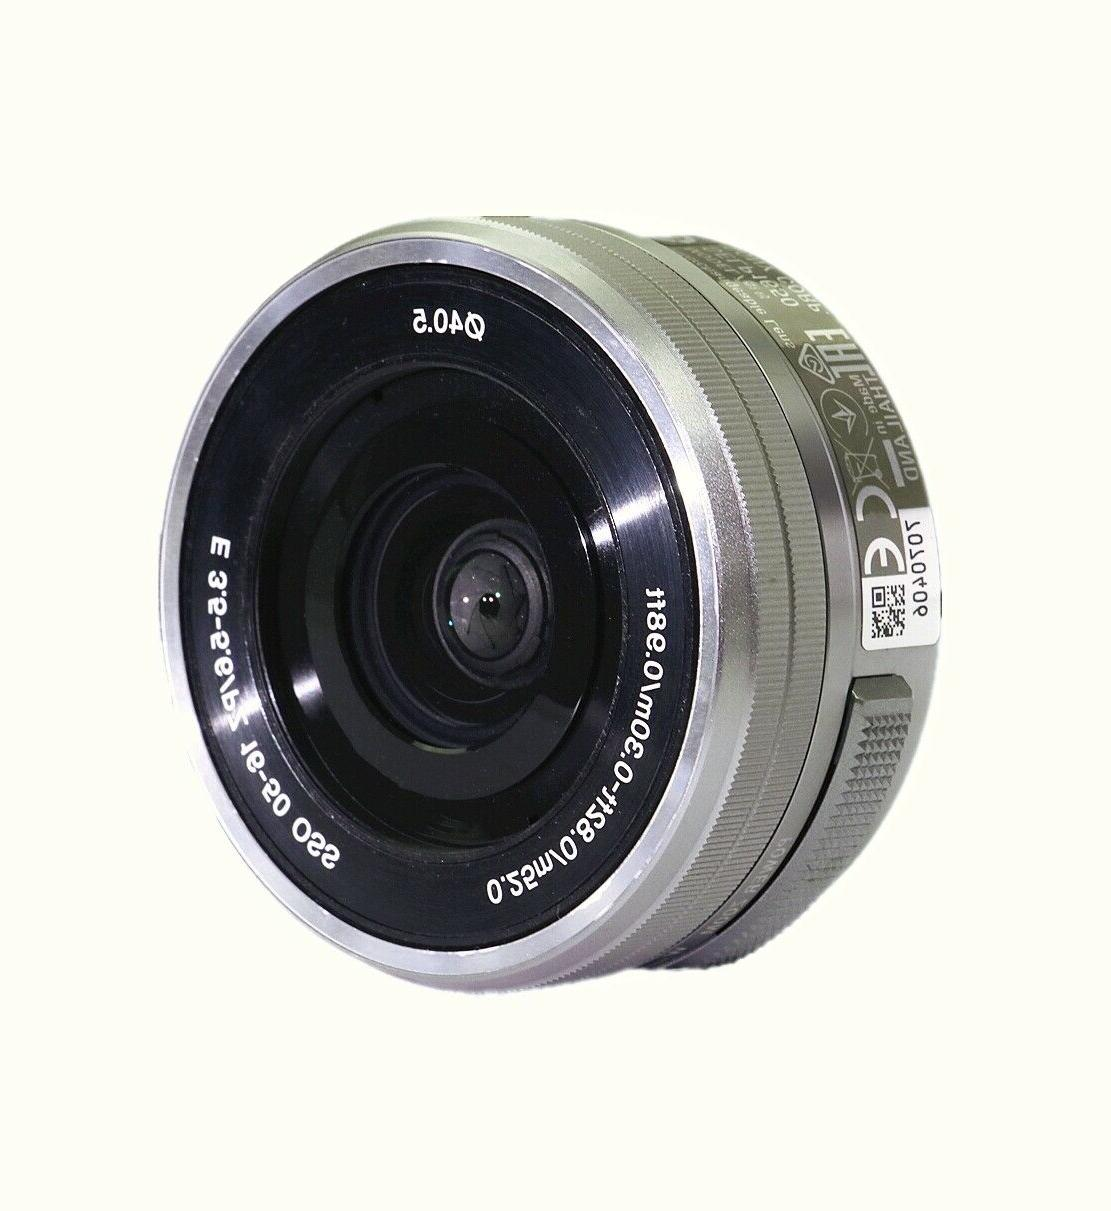 Sony 16-50mm f/3.5-5.6 Power zoom lens SELP1650 for Sony Cameras